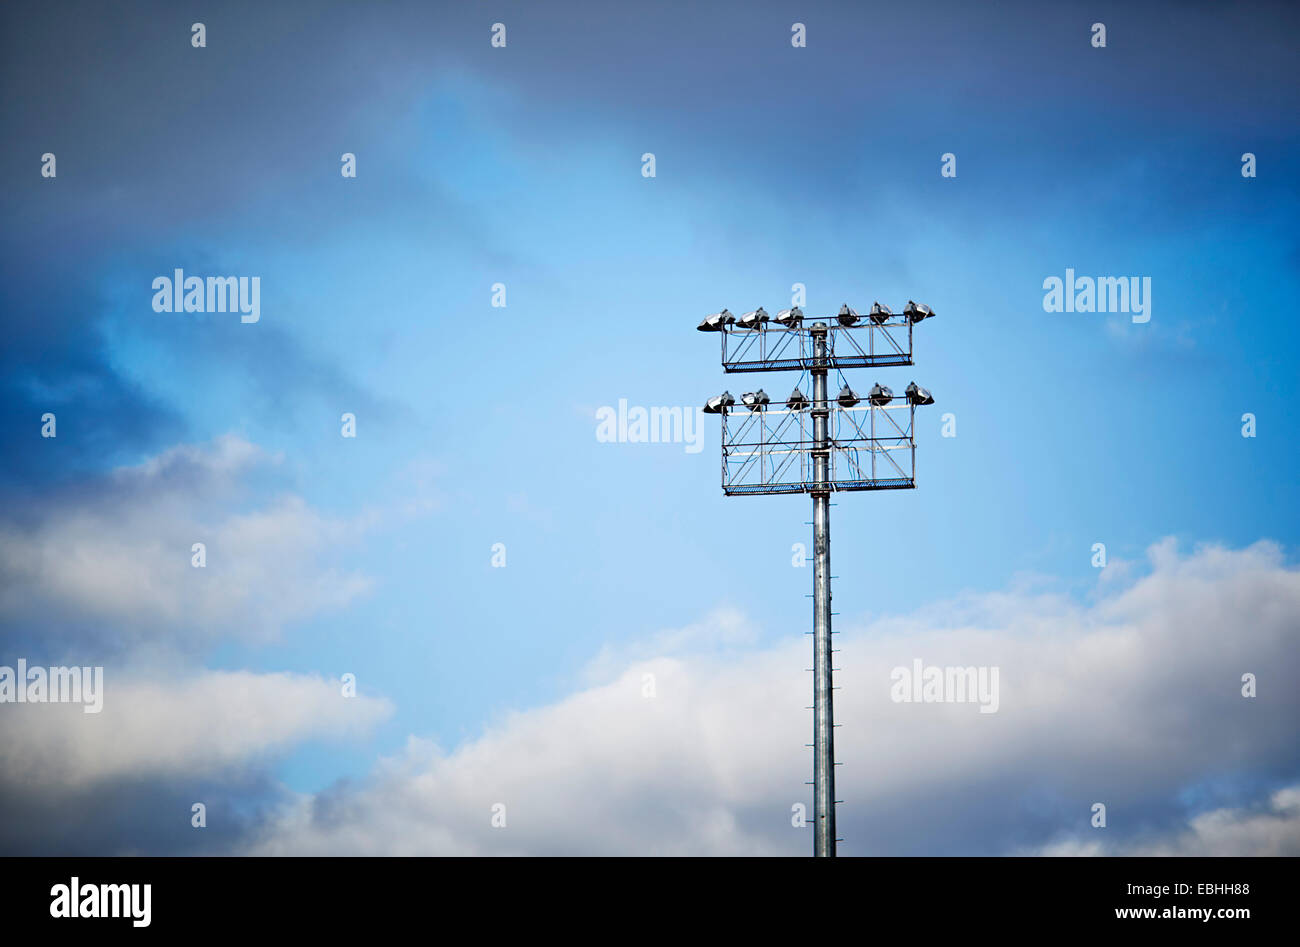 Low angle view of stadium floodlight and blue sky - Stock Image